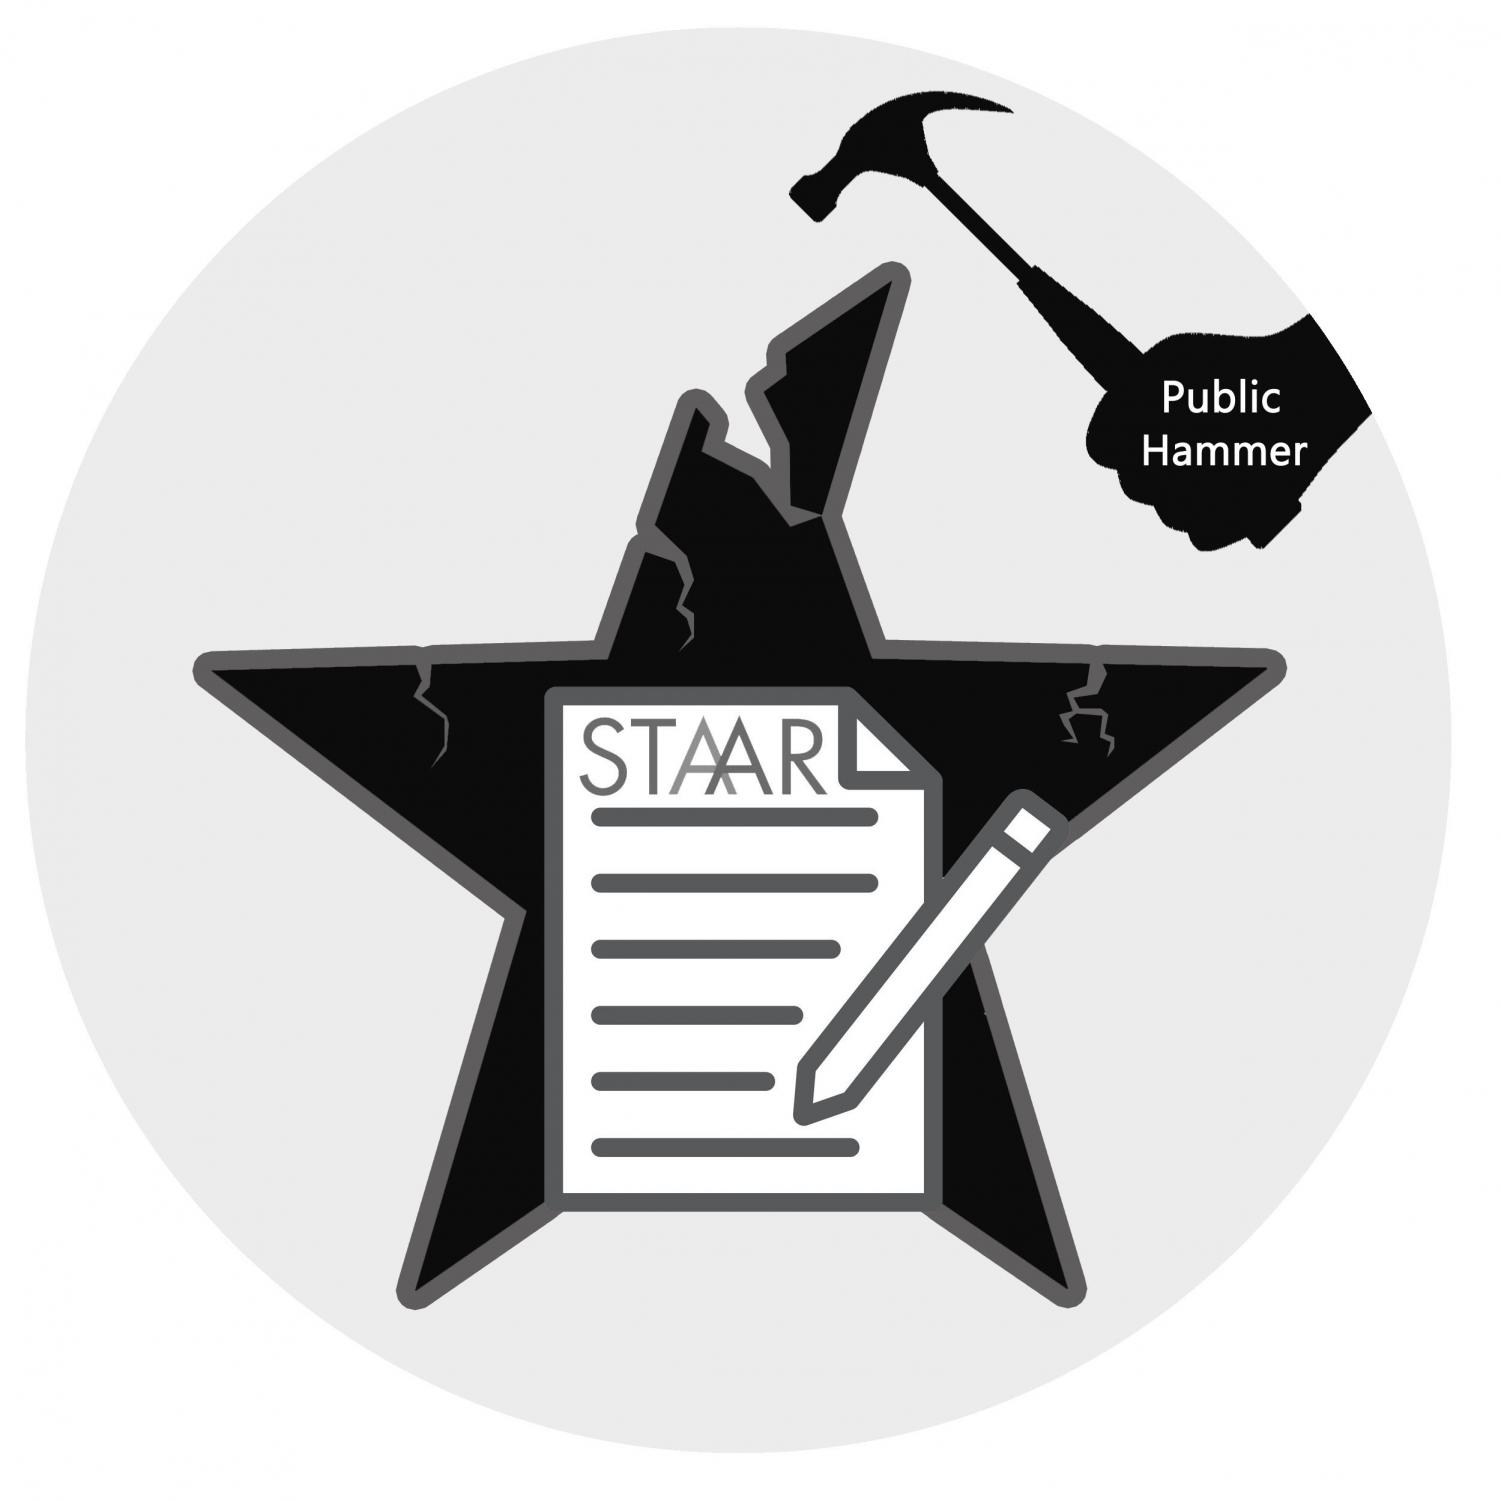 The State of Texas Assessments of Academic Readiness test. The STAAR test is one example of what many states require for students to pass in order to move from one grade to the next.